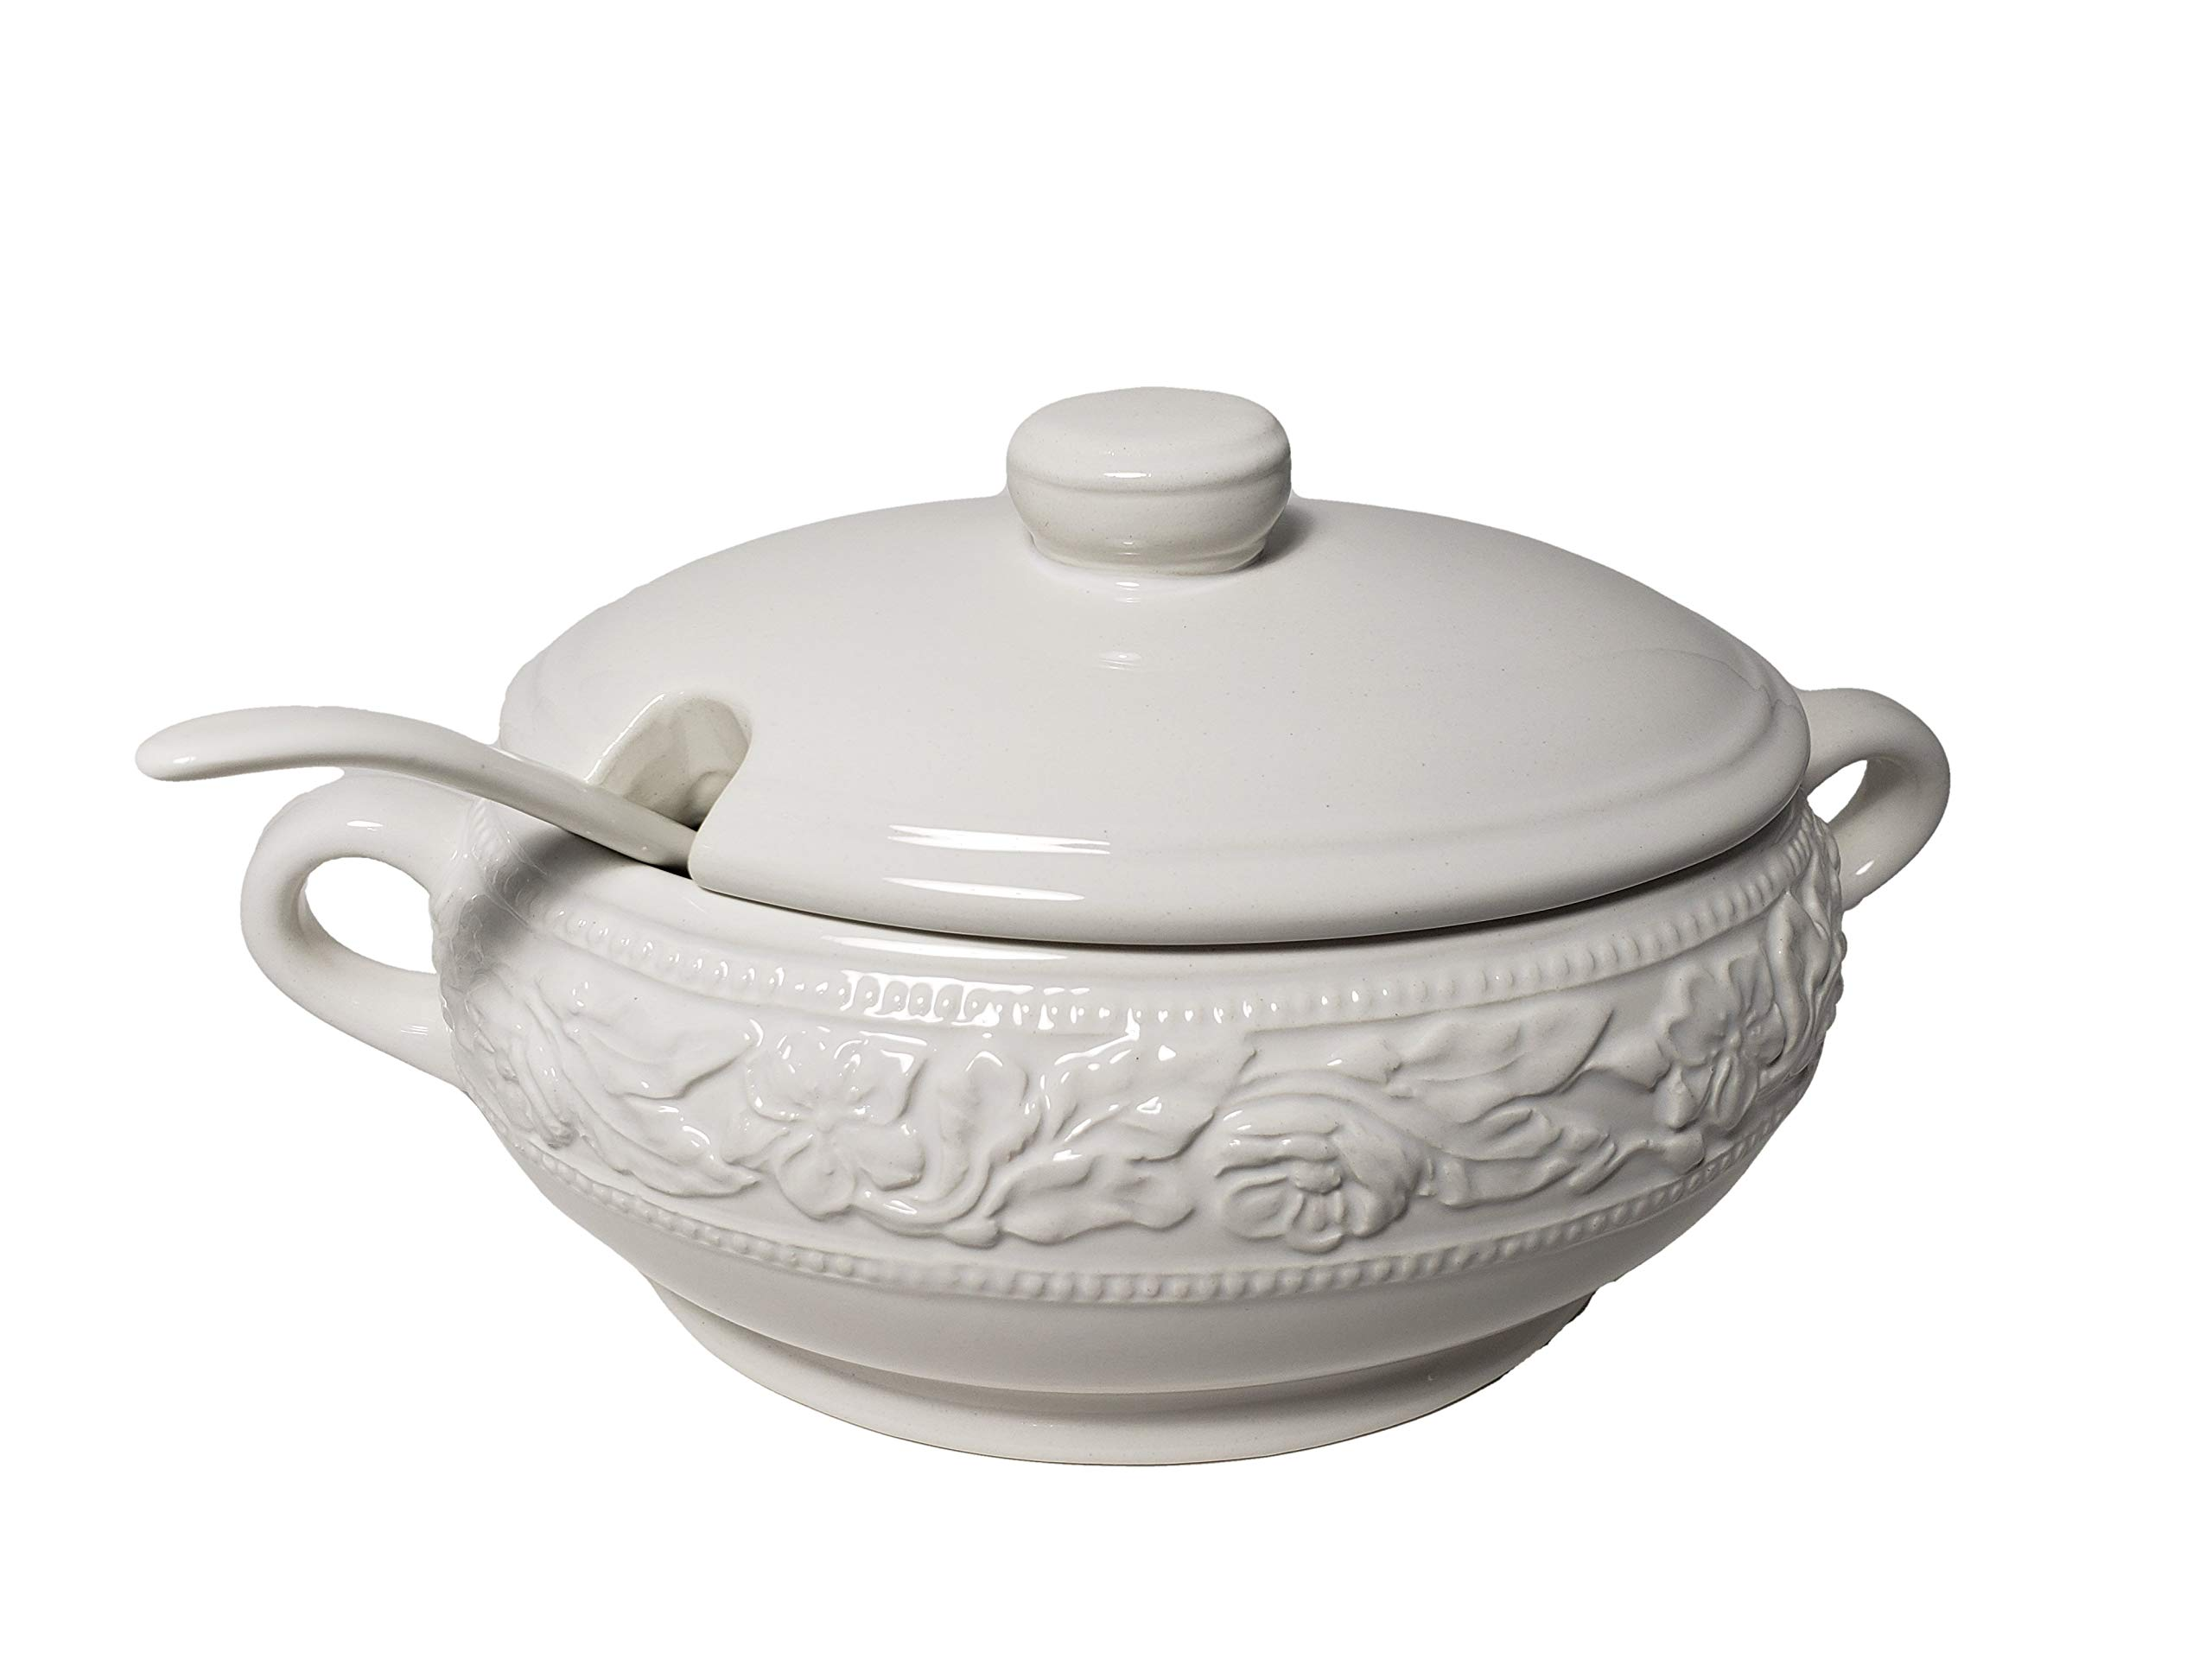 Dolomite Soup Tureen with Ladle 67.6 oz by Regent